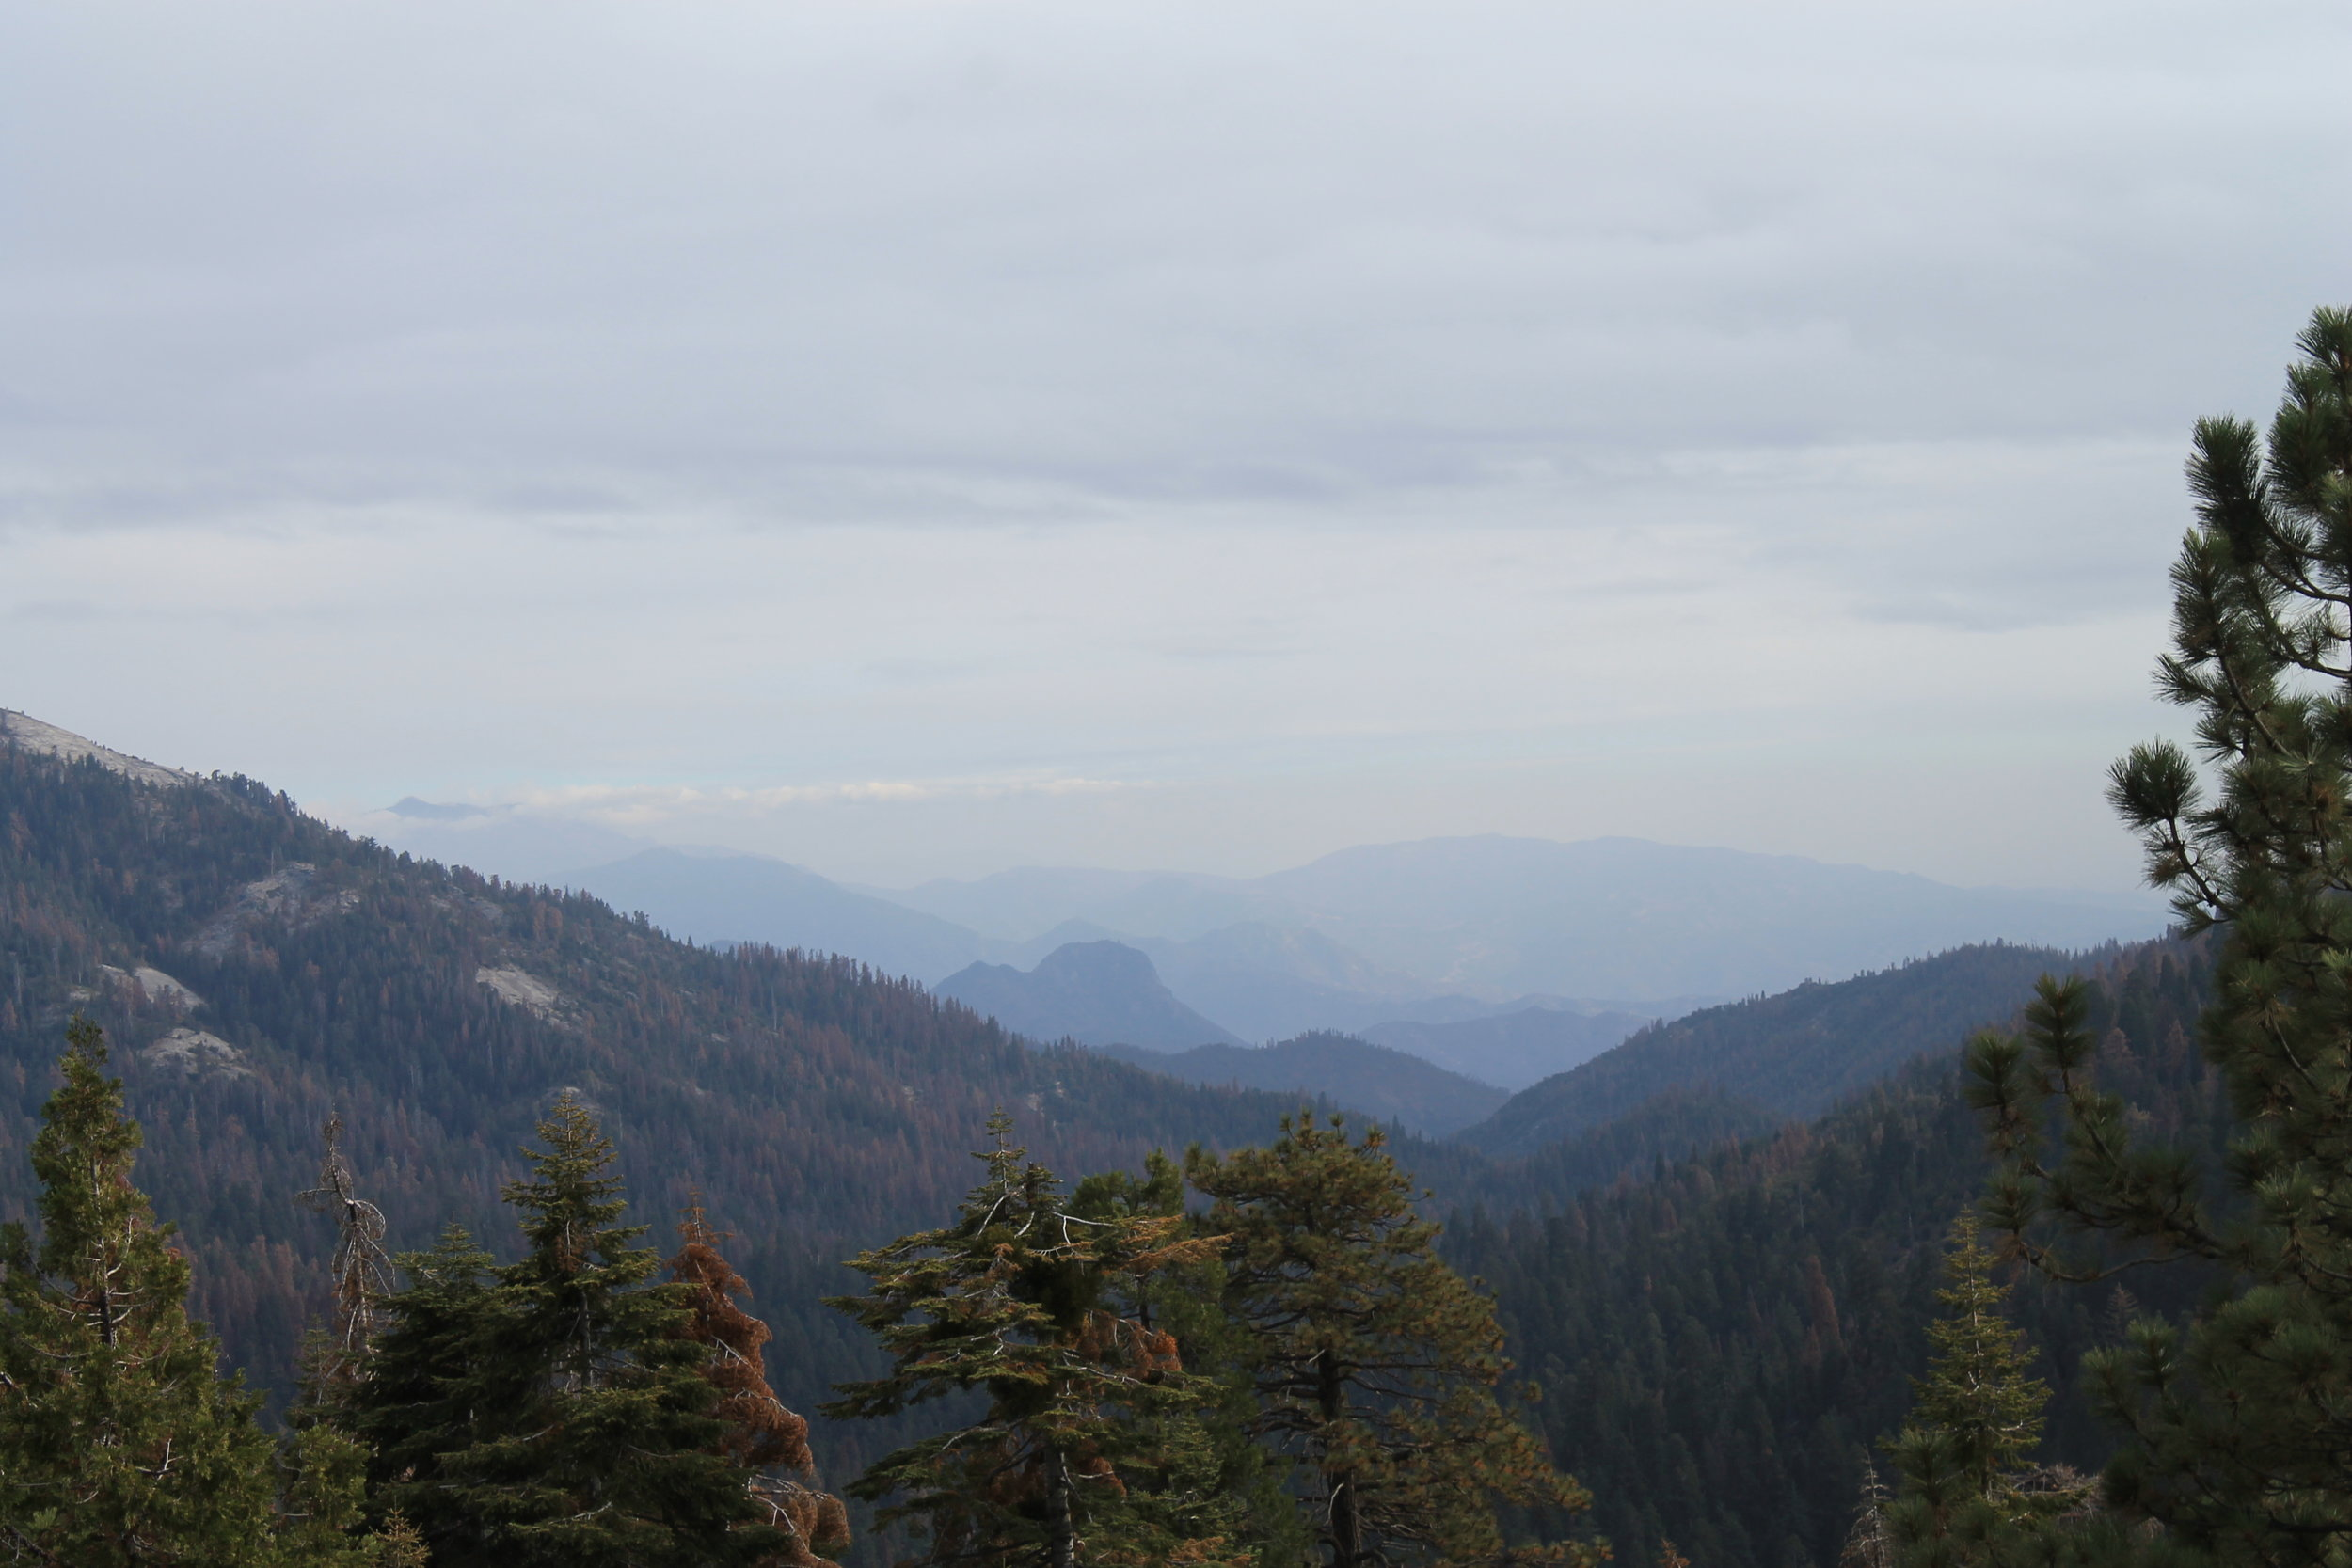 You actually come out  above  the sequoias to cross into Kings Canyon and see some pretty amazing views. When we visited, there were several wildfires going on (nothing like it is this year however) so the view was a bit hazy.